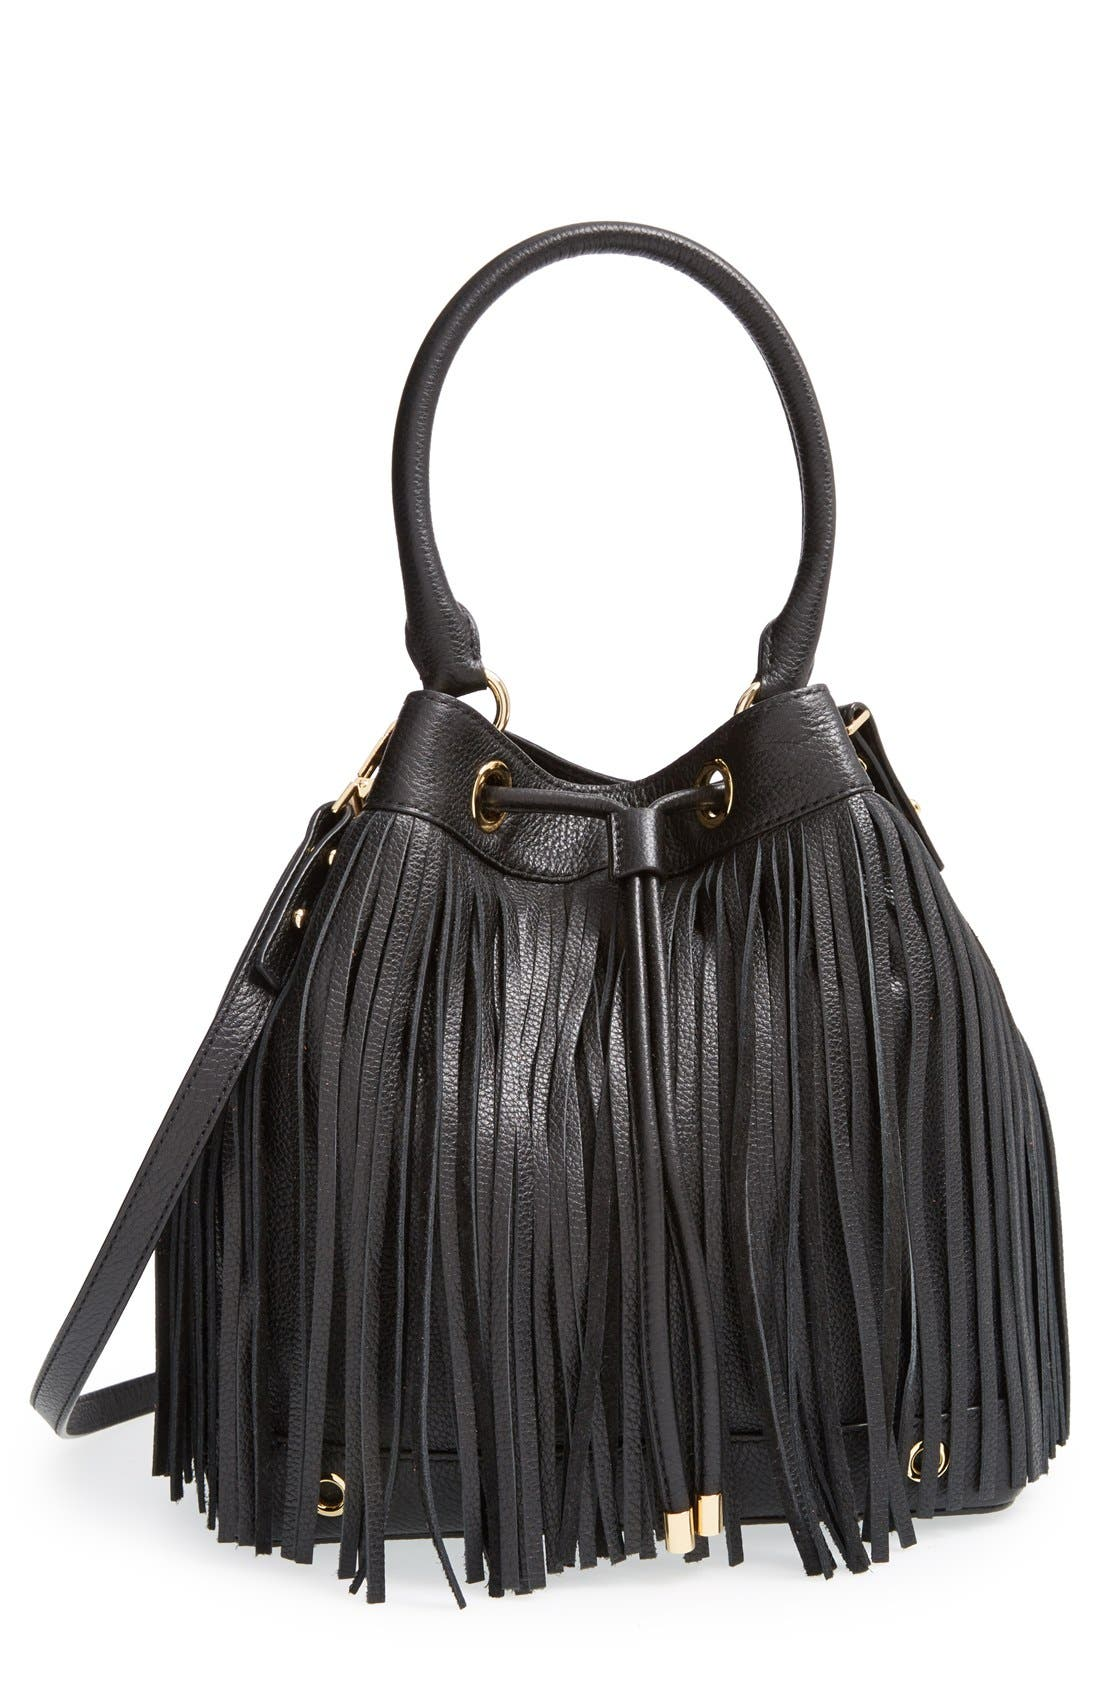 MILLY, 'Essex' Fringed Leather Bucket Bag, Main thumbnail 1, color, 001